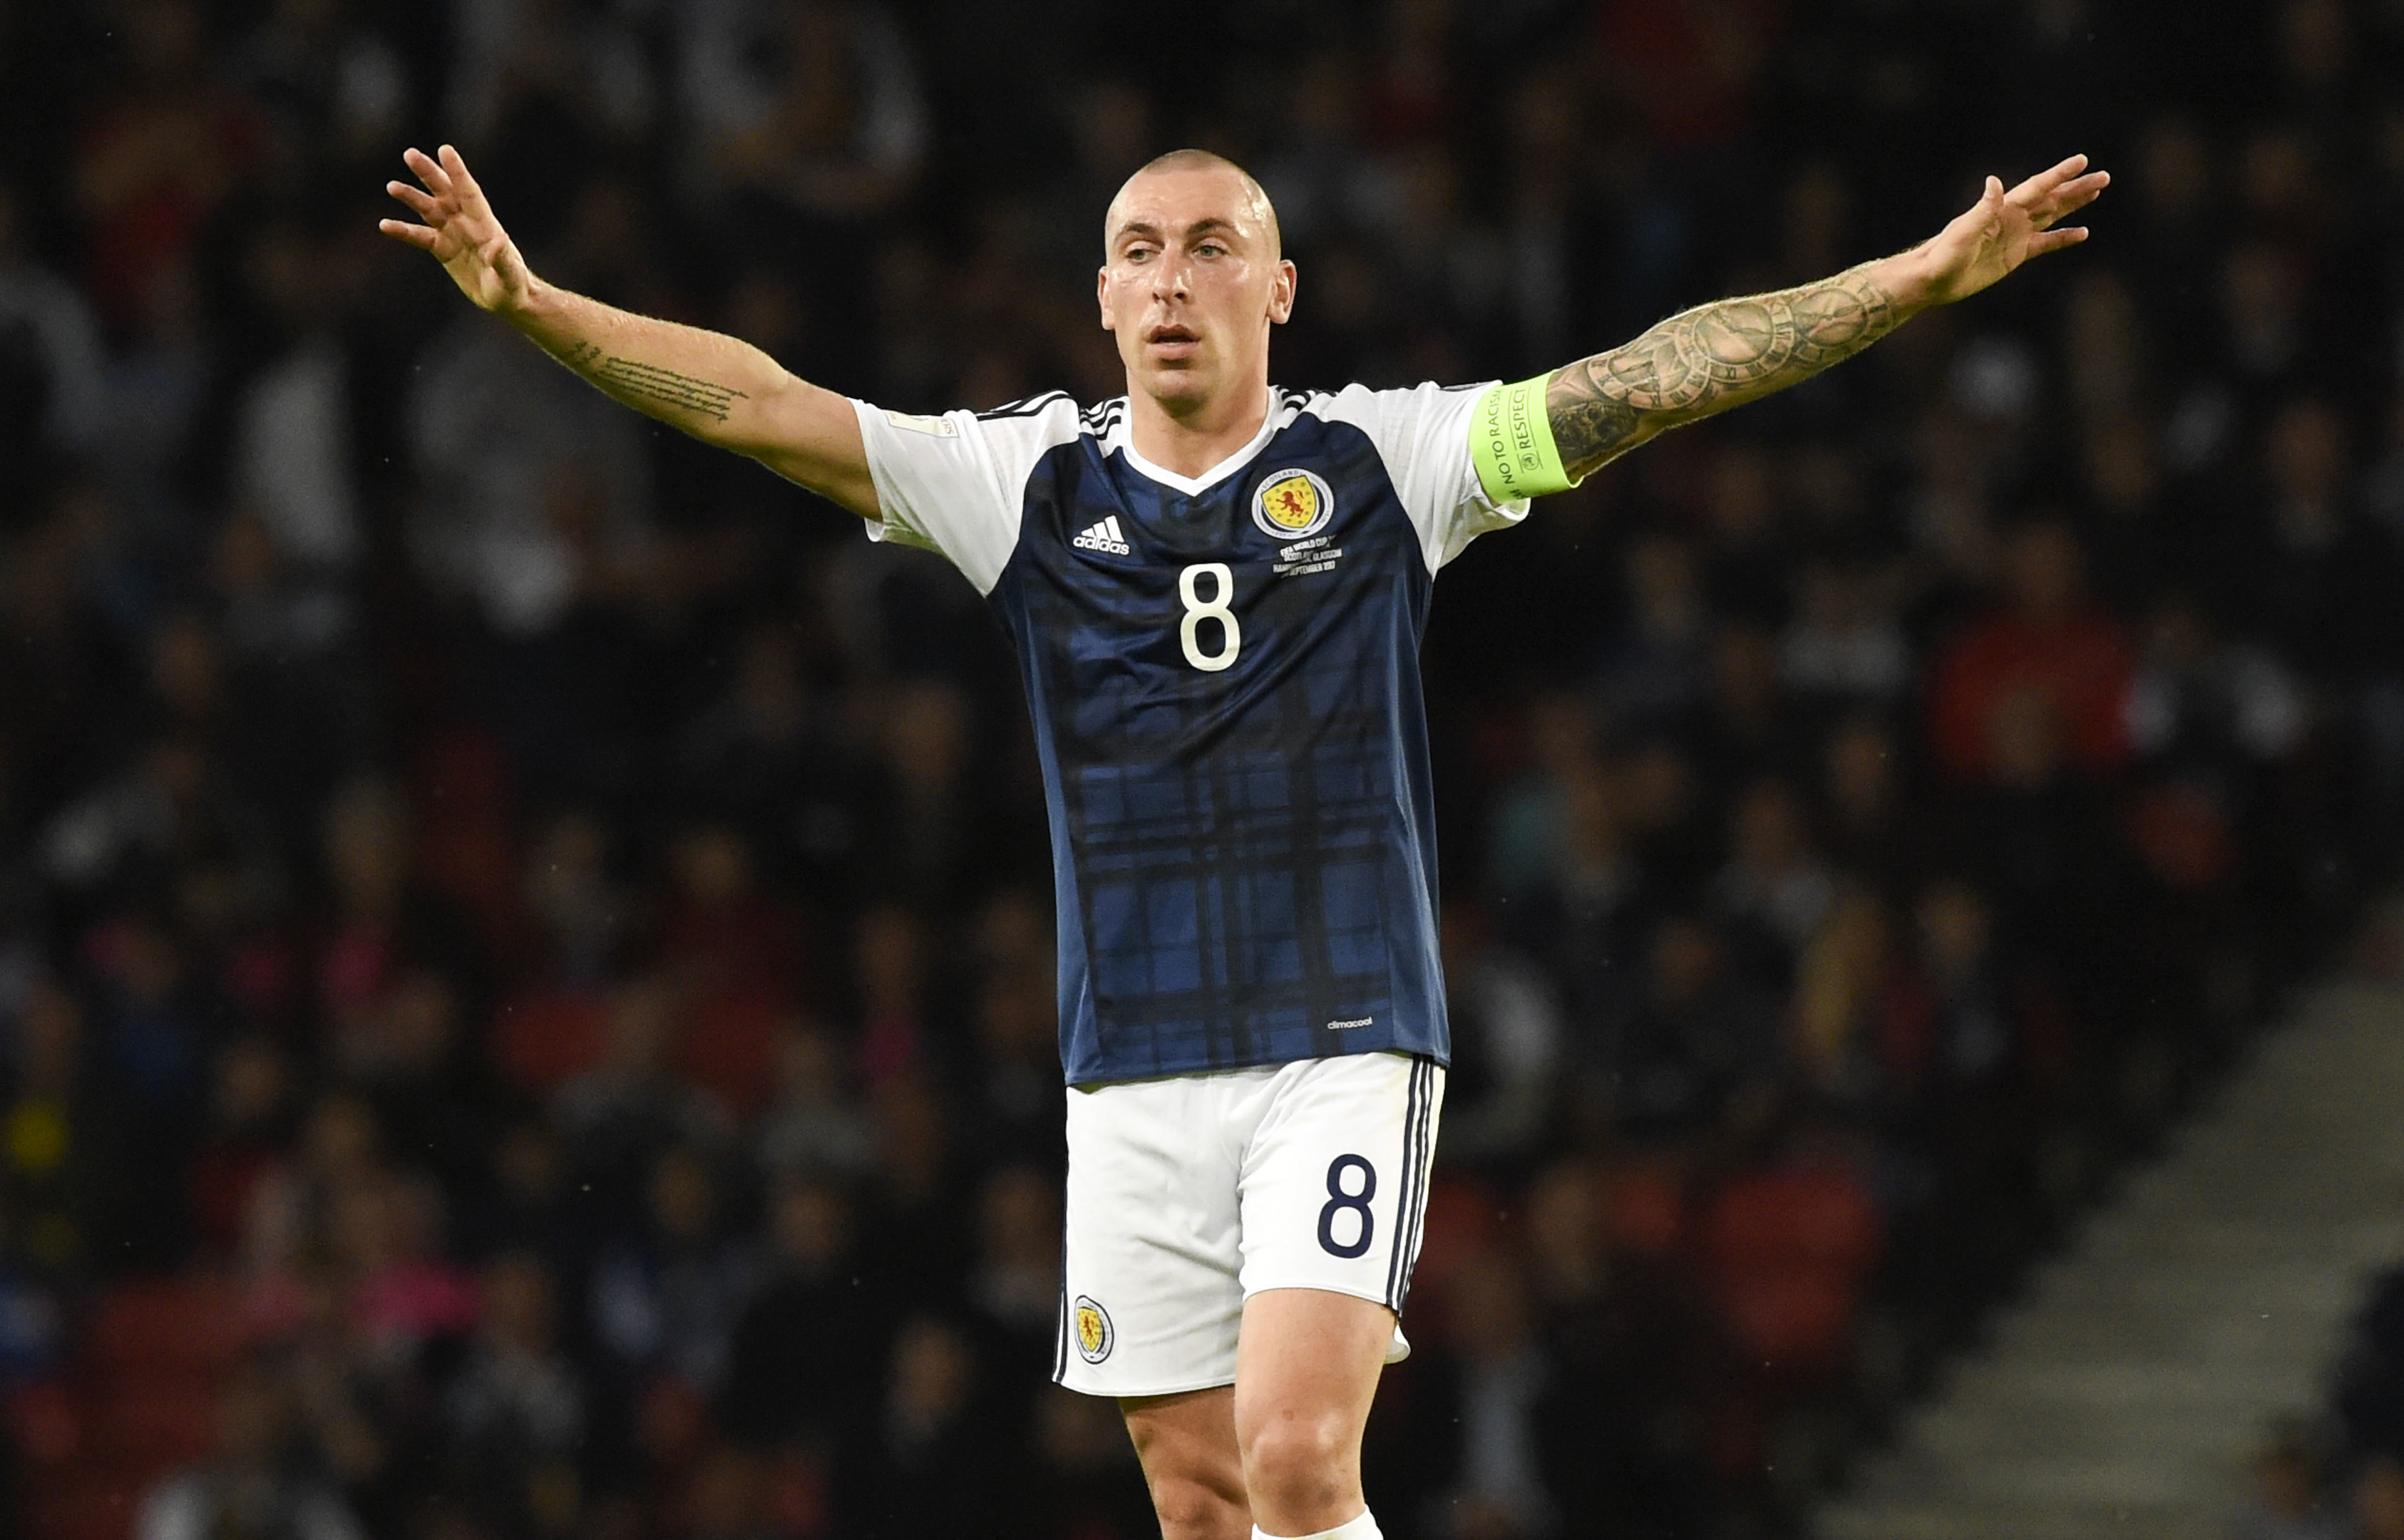 Scott Brown has announced his retirement from Scotland duties - again.